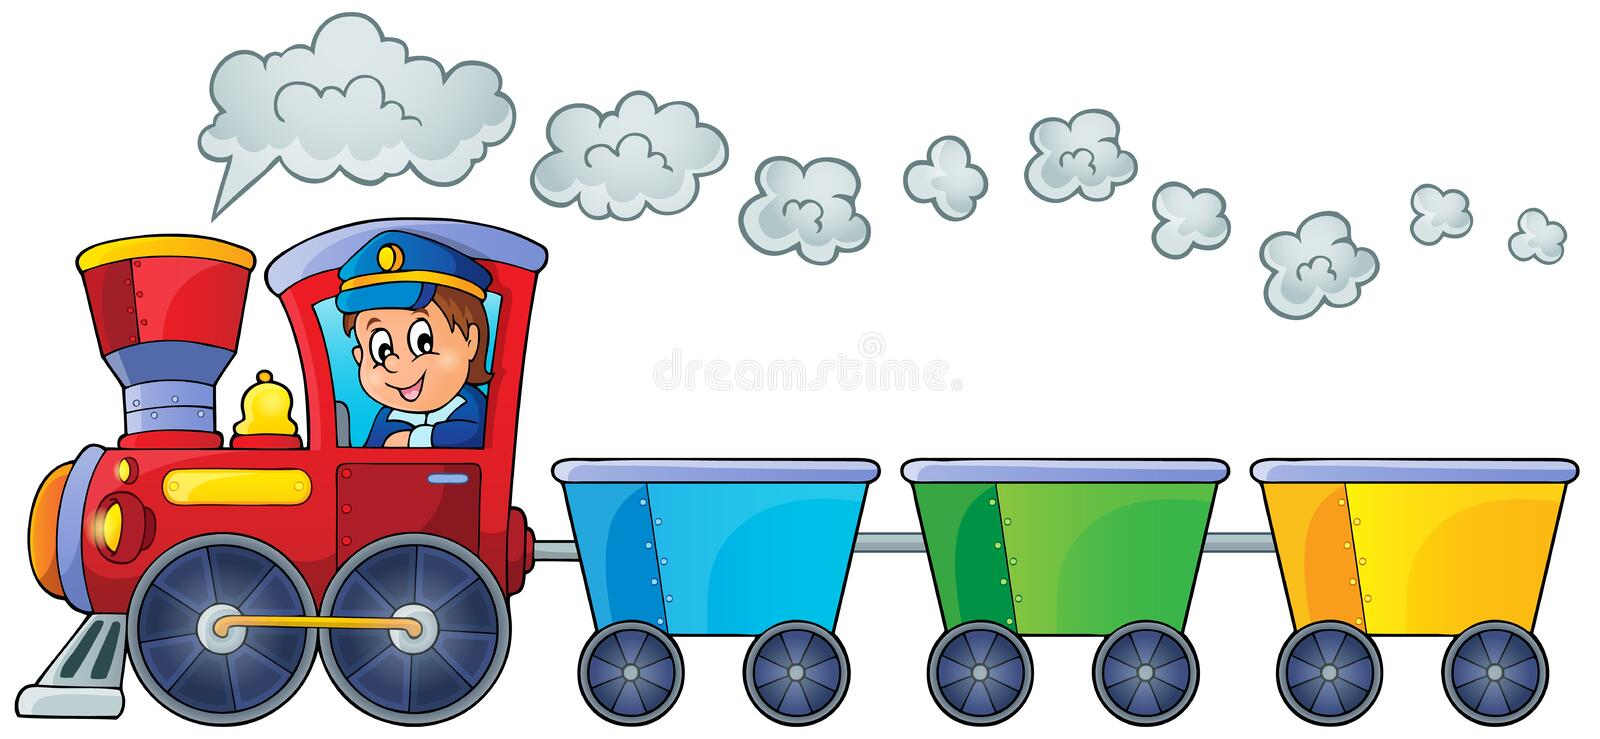 Tren con tres carros vacíos libre illustration